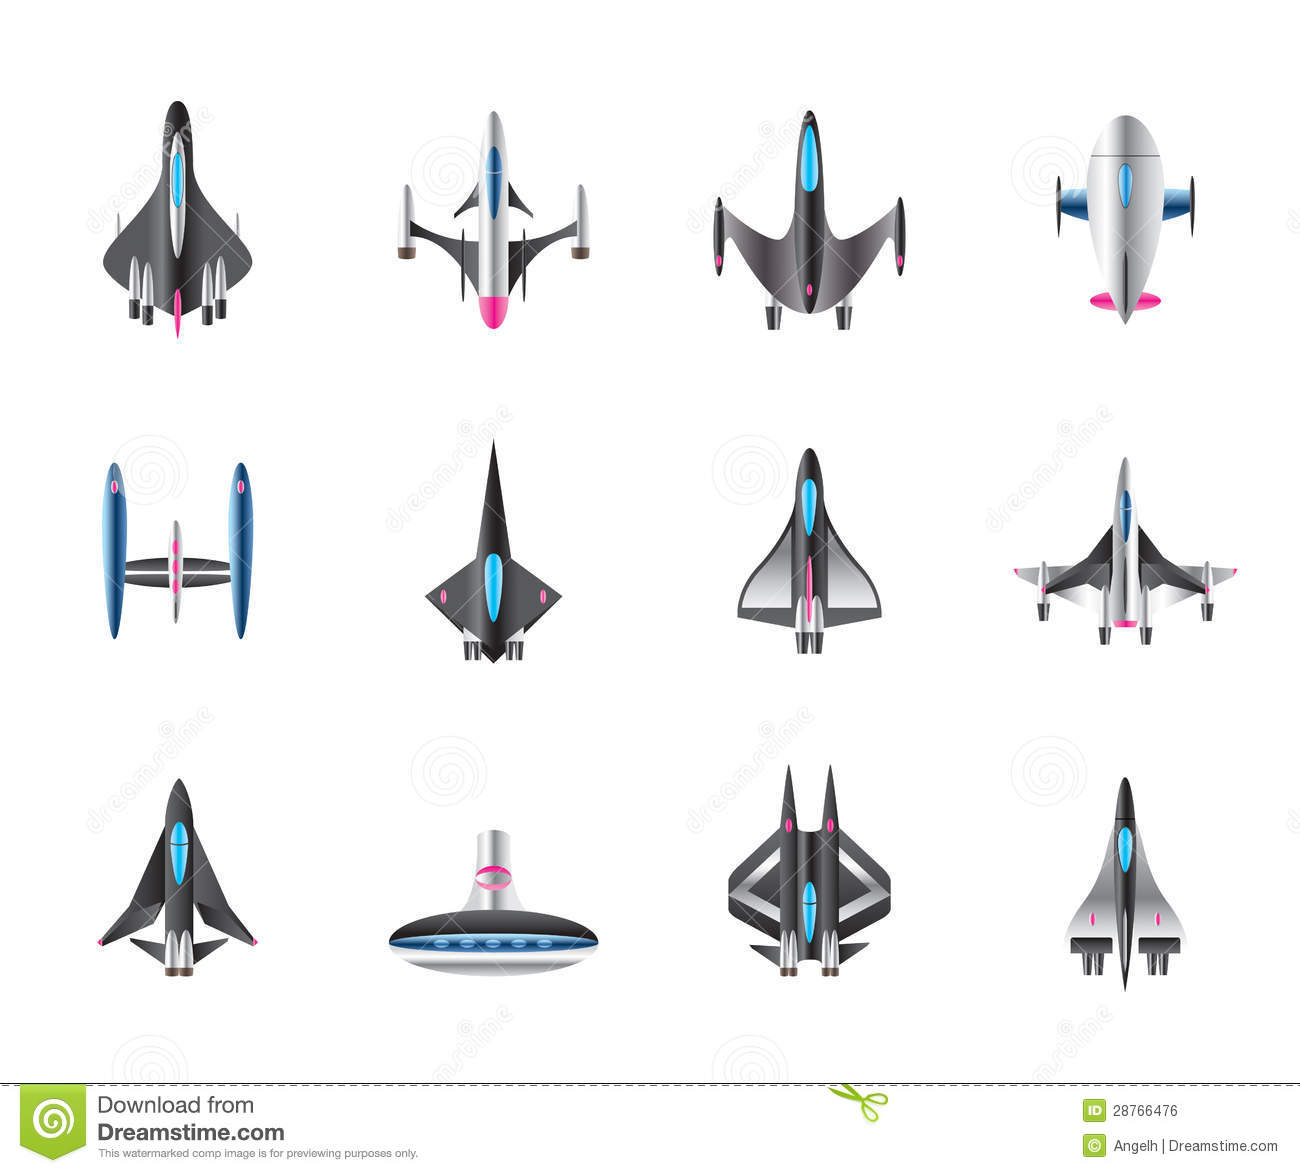 2010 07 01 archive furthermore Royalty Free Stock Image Different Spaceships Flight Image28766476 likewise  also  on usa map with different states